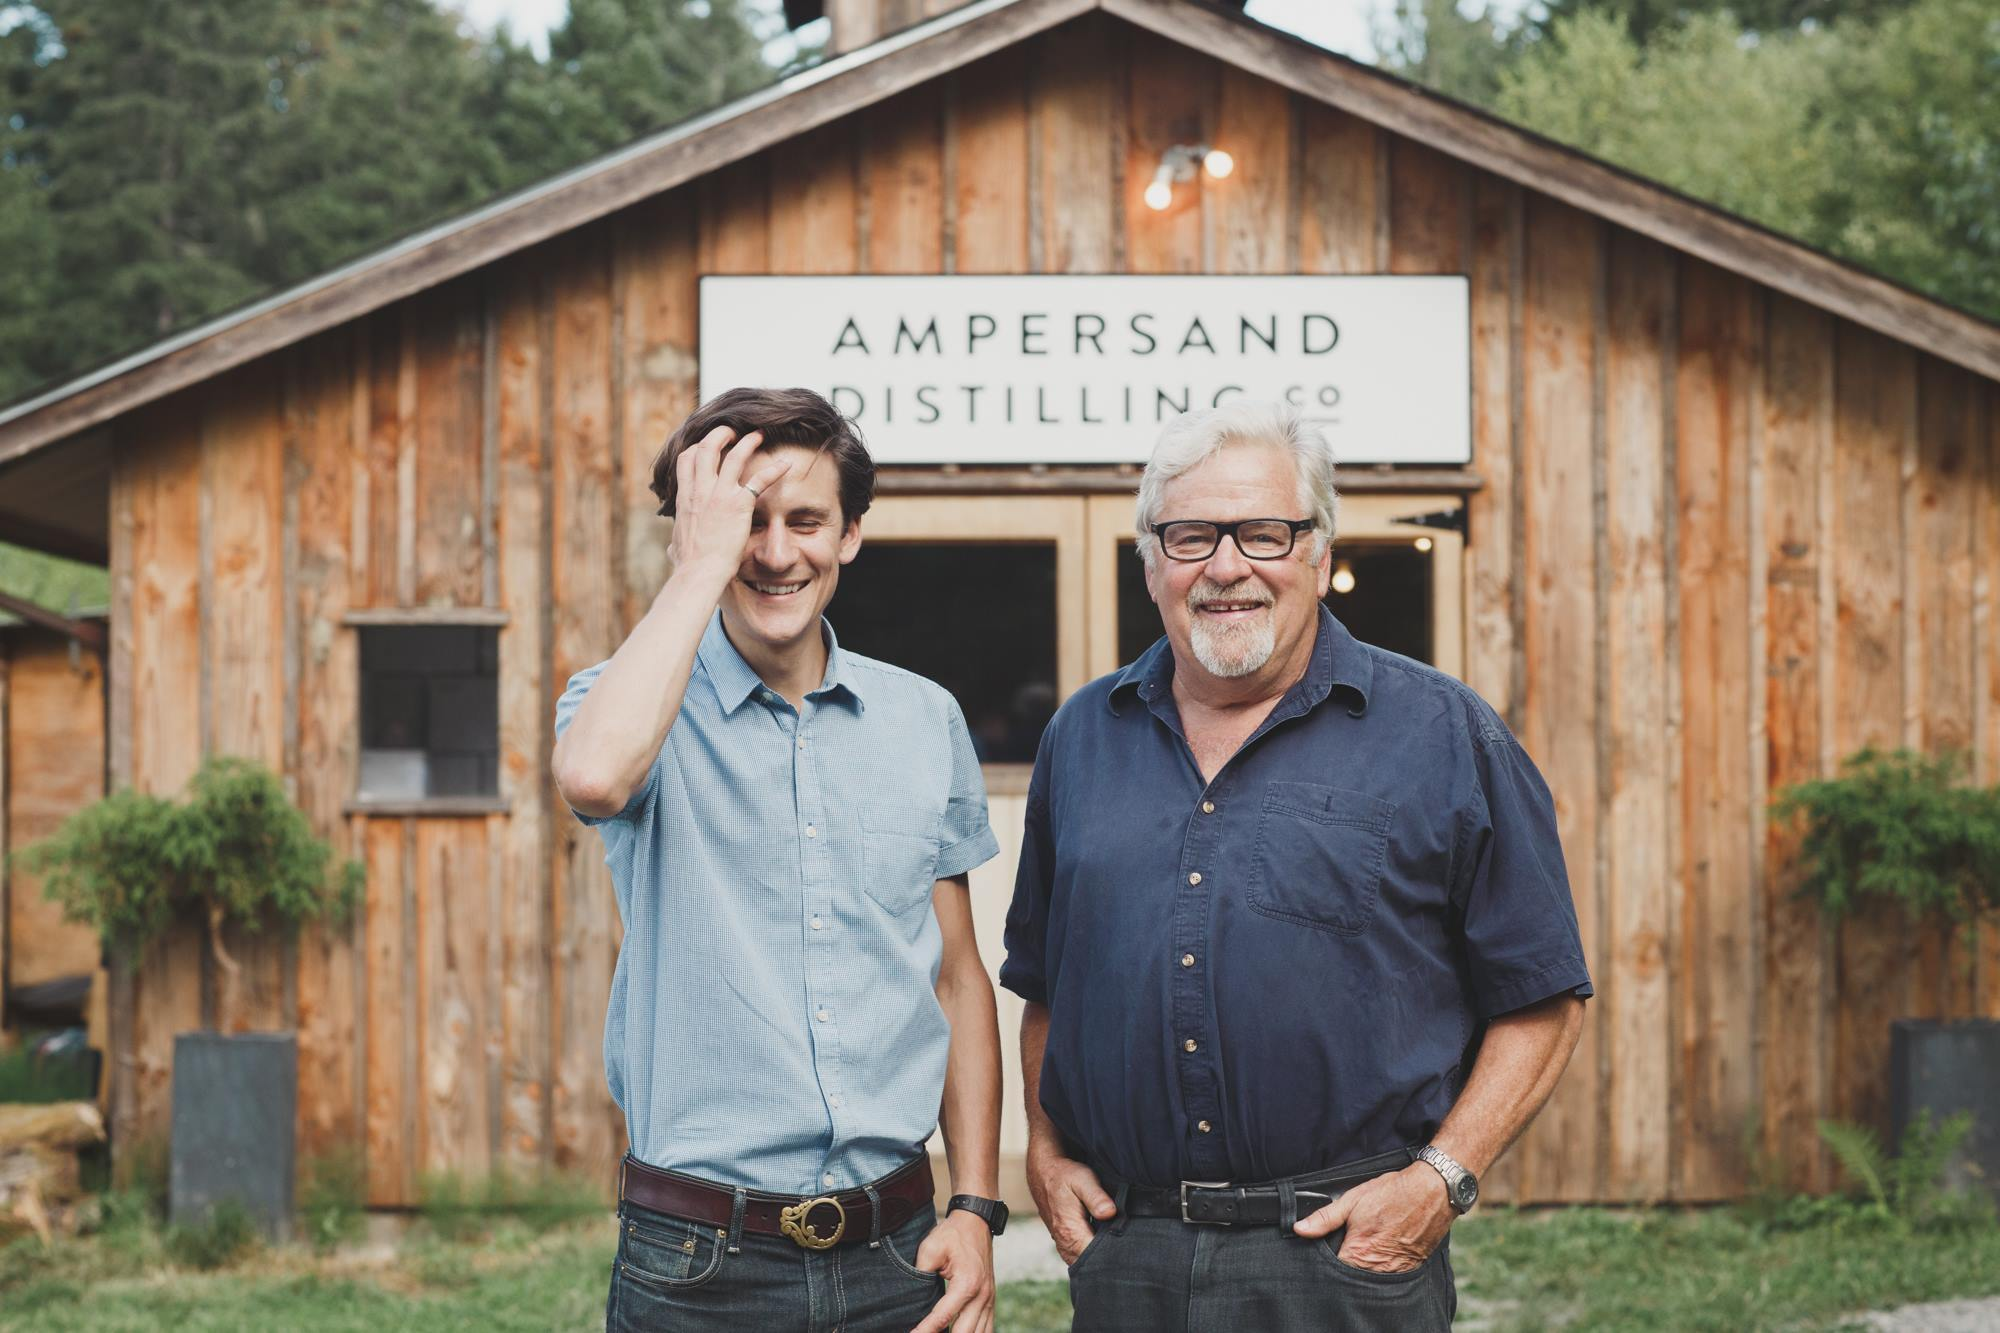 ampersand distilling company